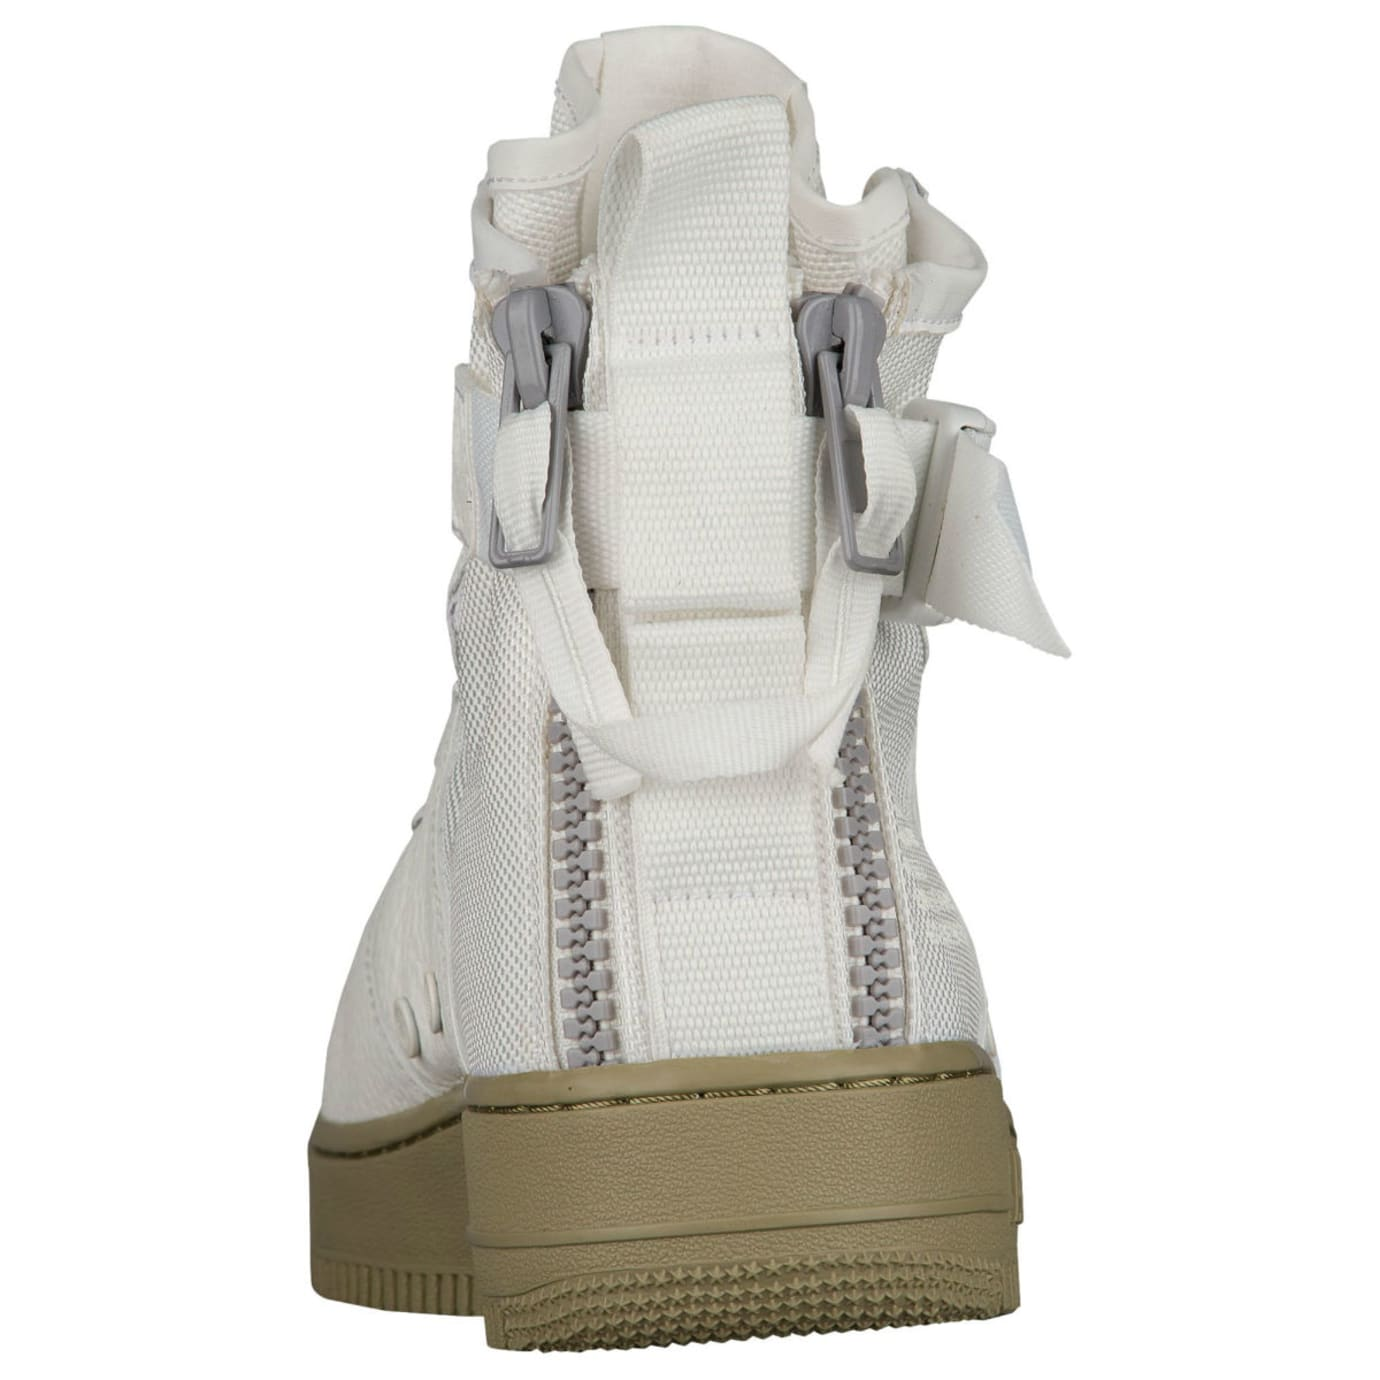 Nike SF Air Force 1 Mid Ivory Neutral Release Date Heel 917753-101